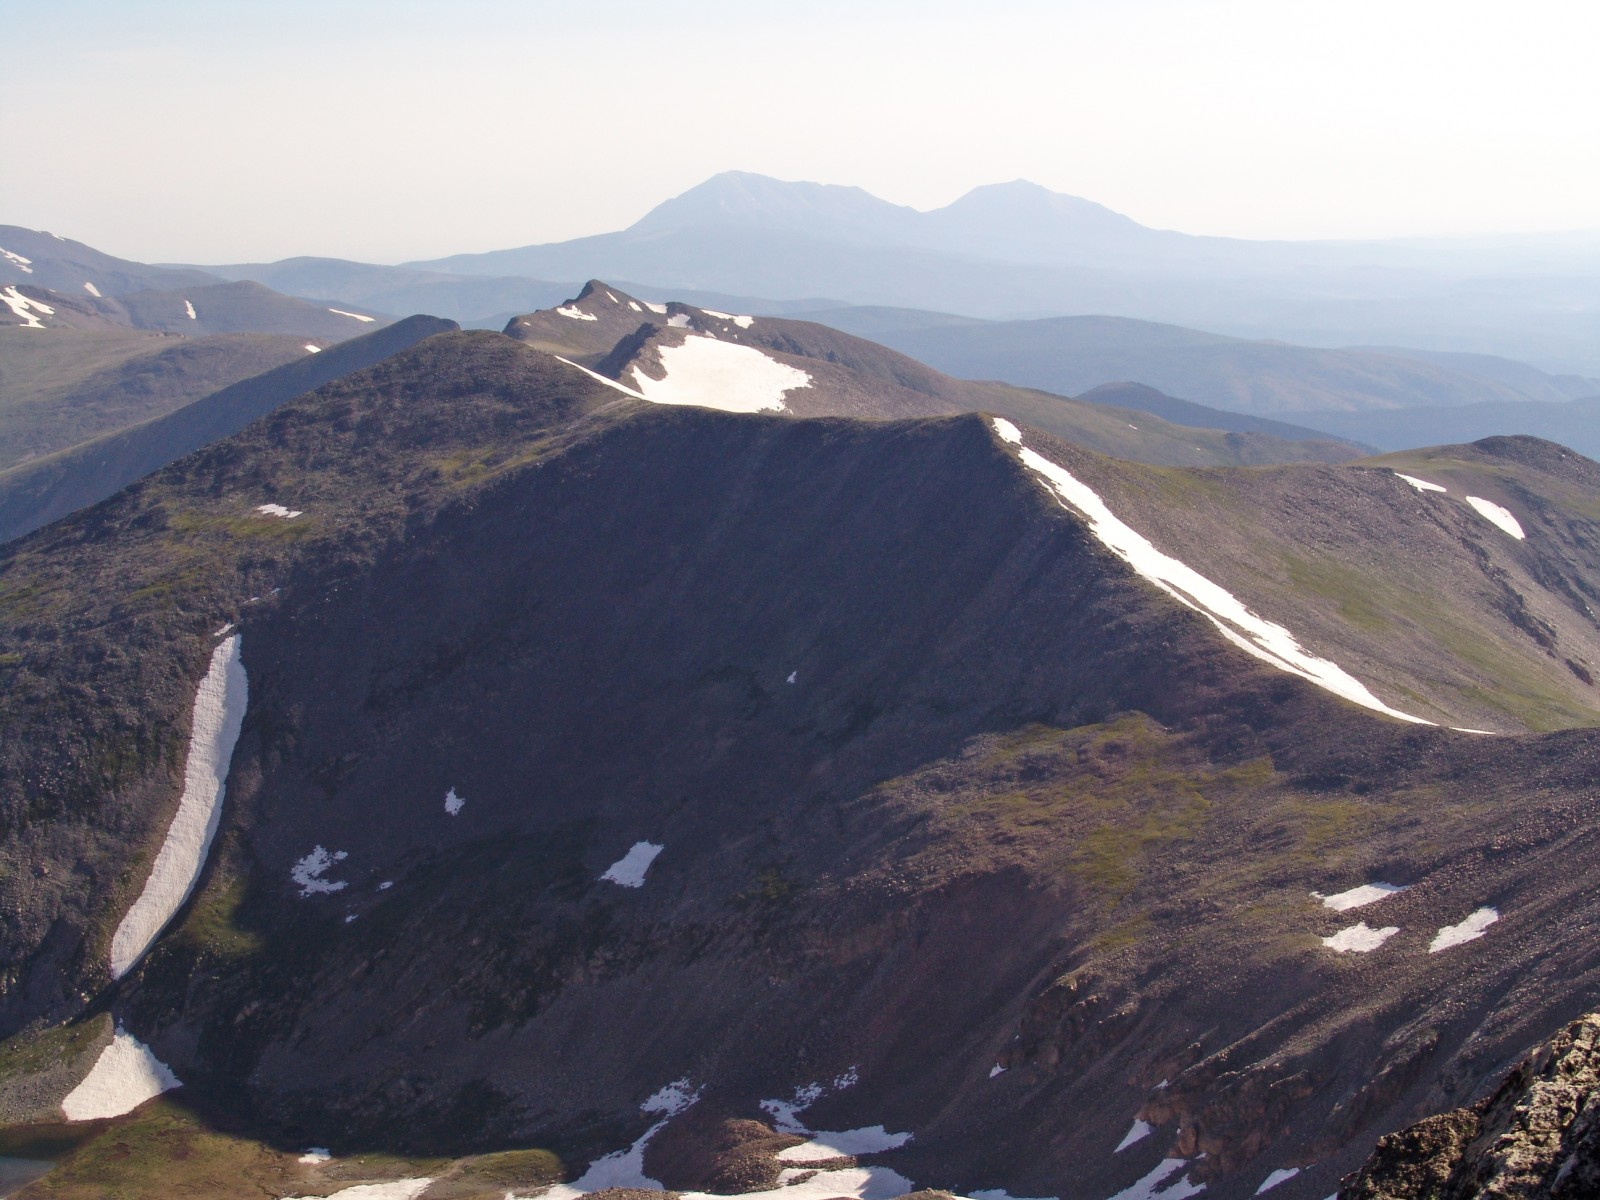 Unnamed 13,565 (left of center) from 14er Culebra Peak